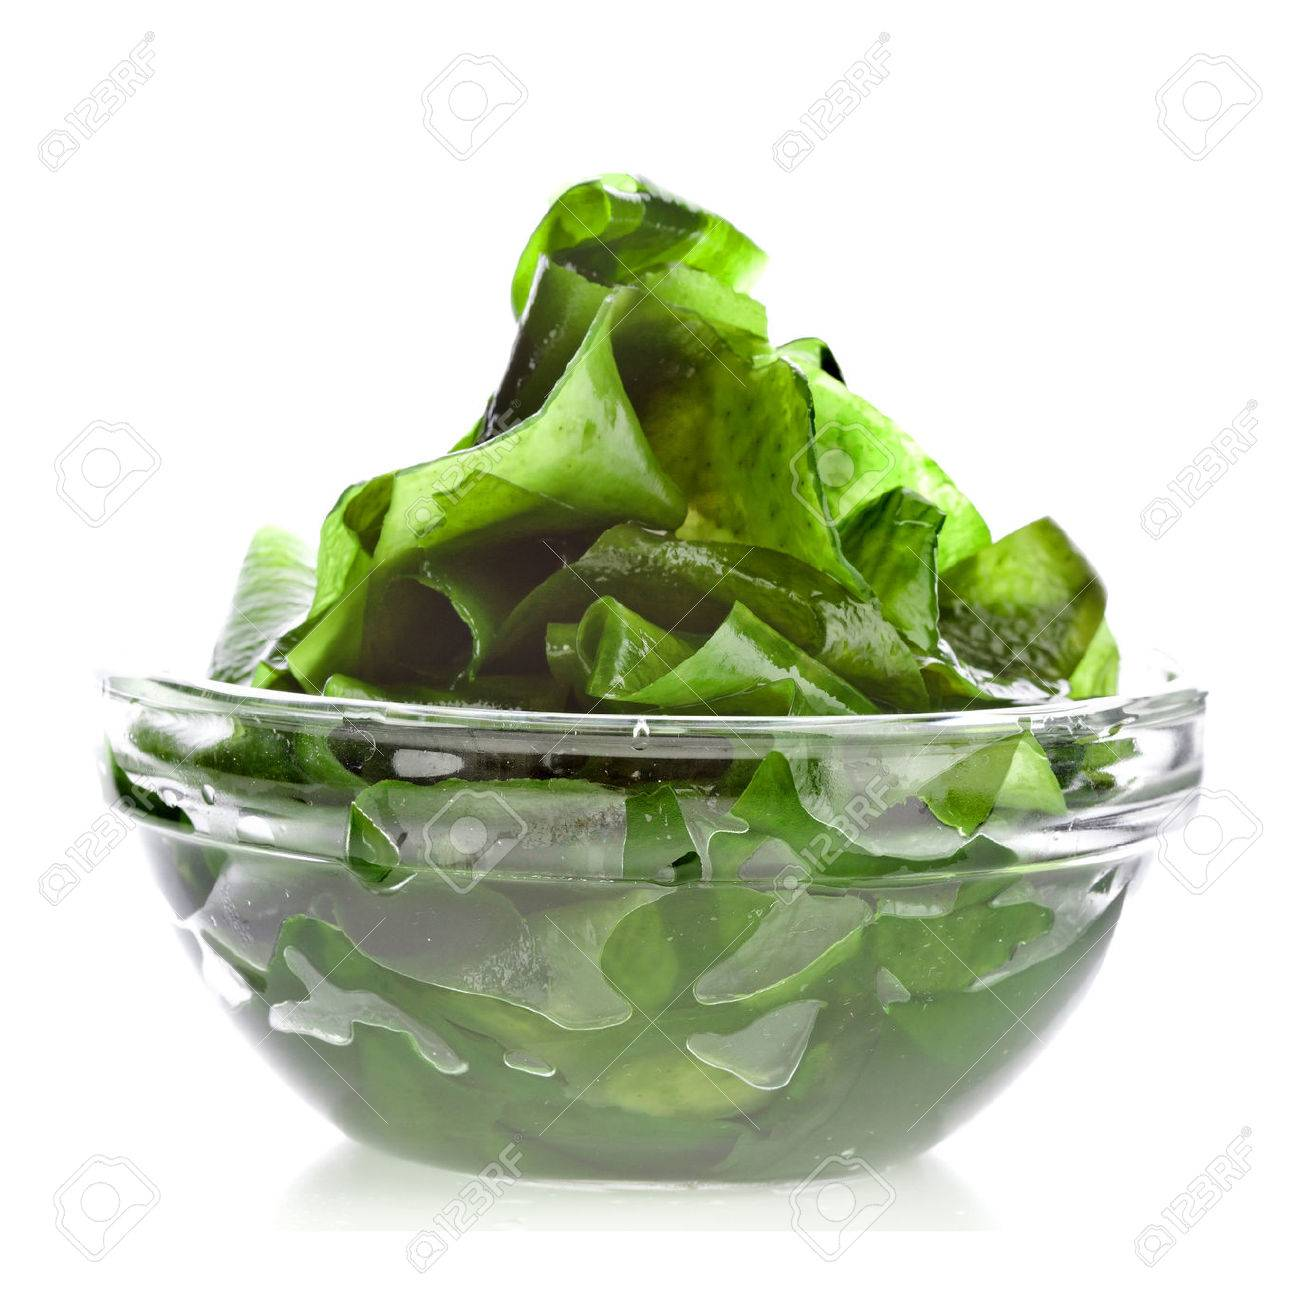 seaweed kelp laminaria in glass bowl close up isolated on white background - 24397407